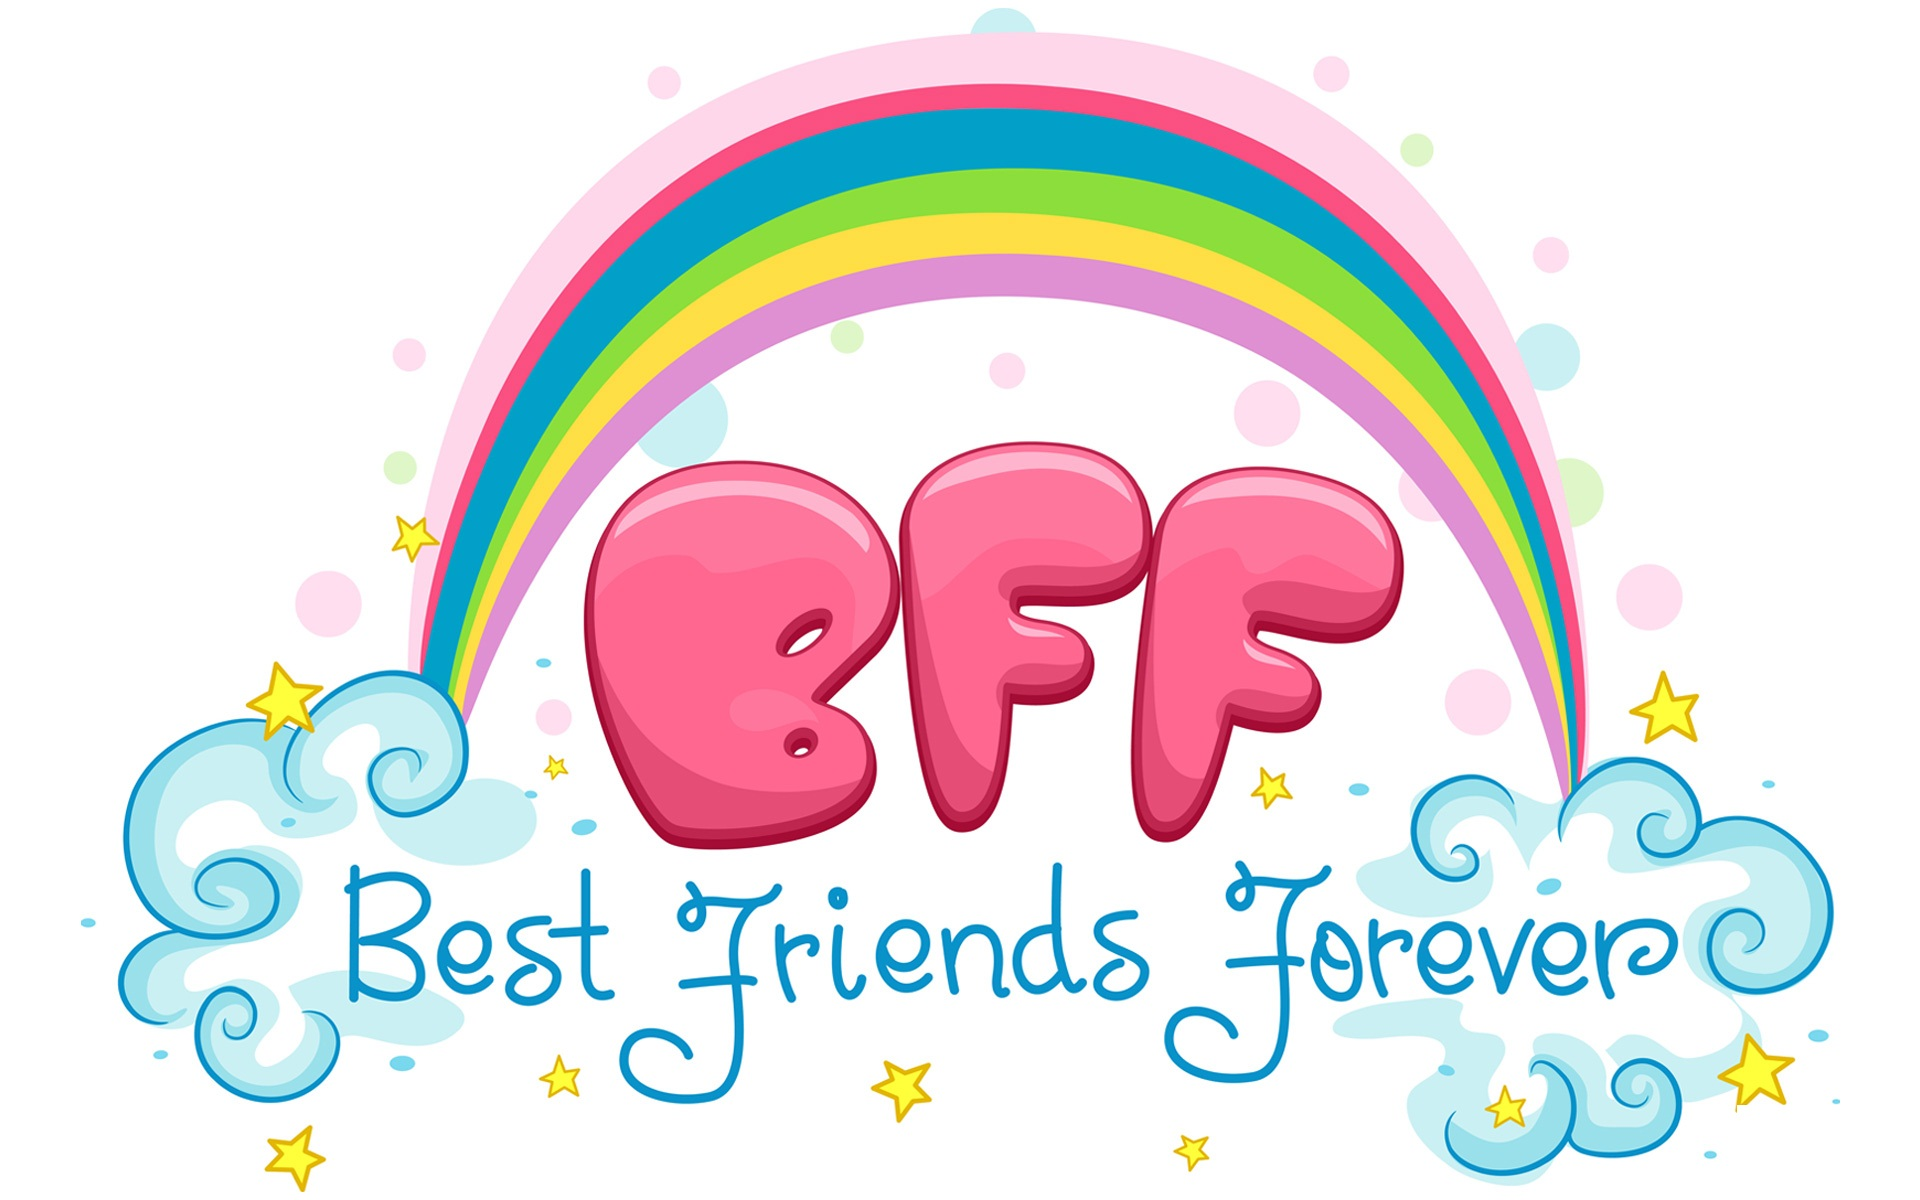 Friendship Wallpapers For Whatsapp Free Download.